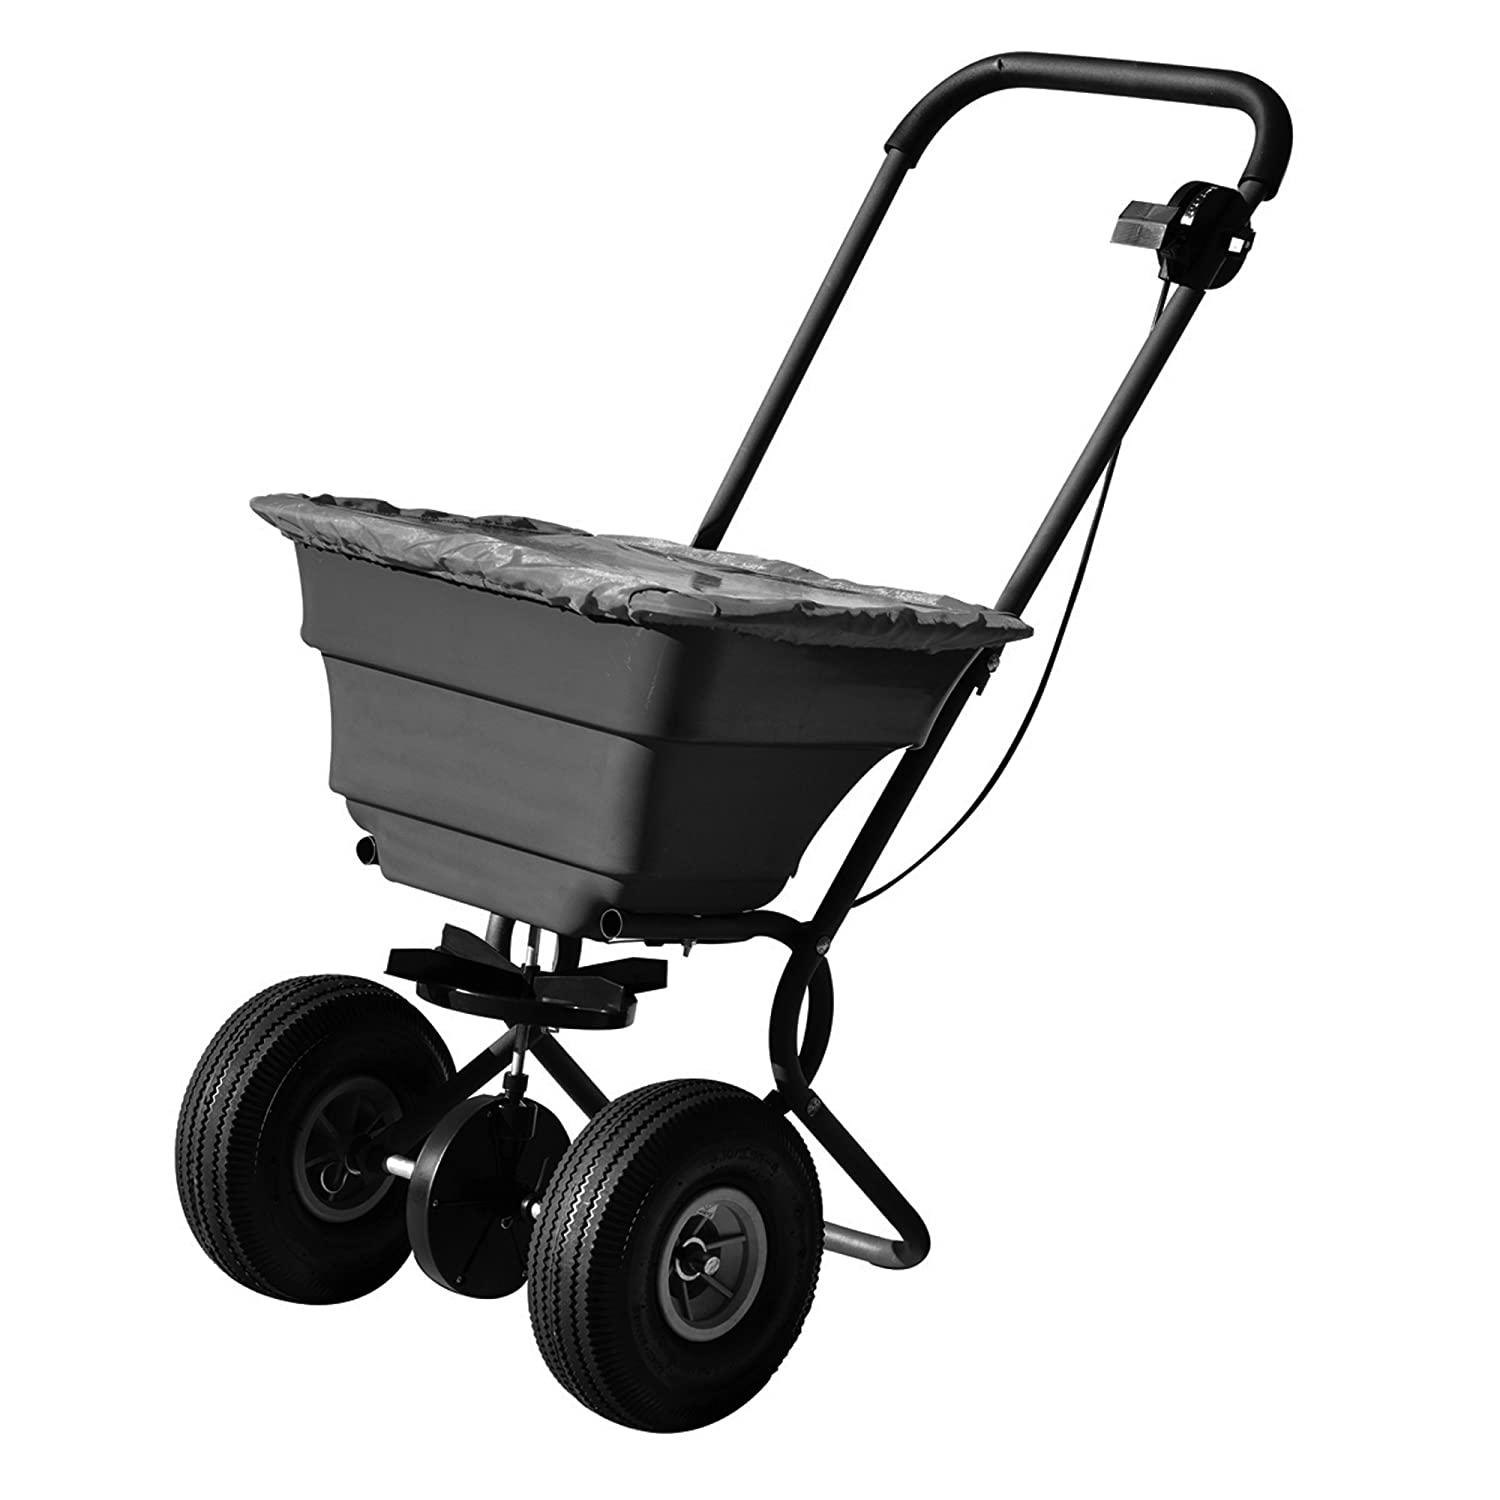 Precision Products 75-Pound Capacity Broadcast Spreader with Pneumatic Tires and Rain Cover SB4000PRCGY Precision Products Inc